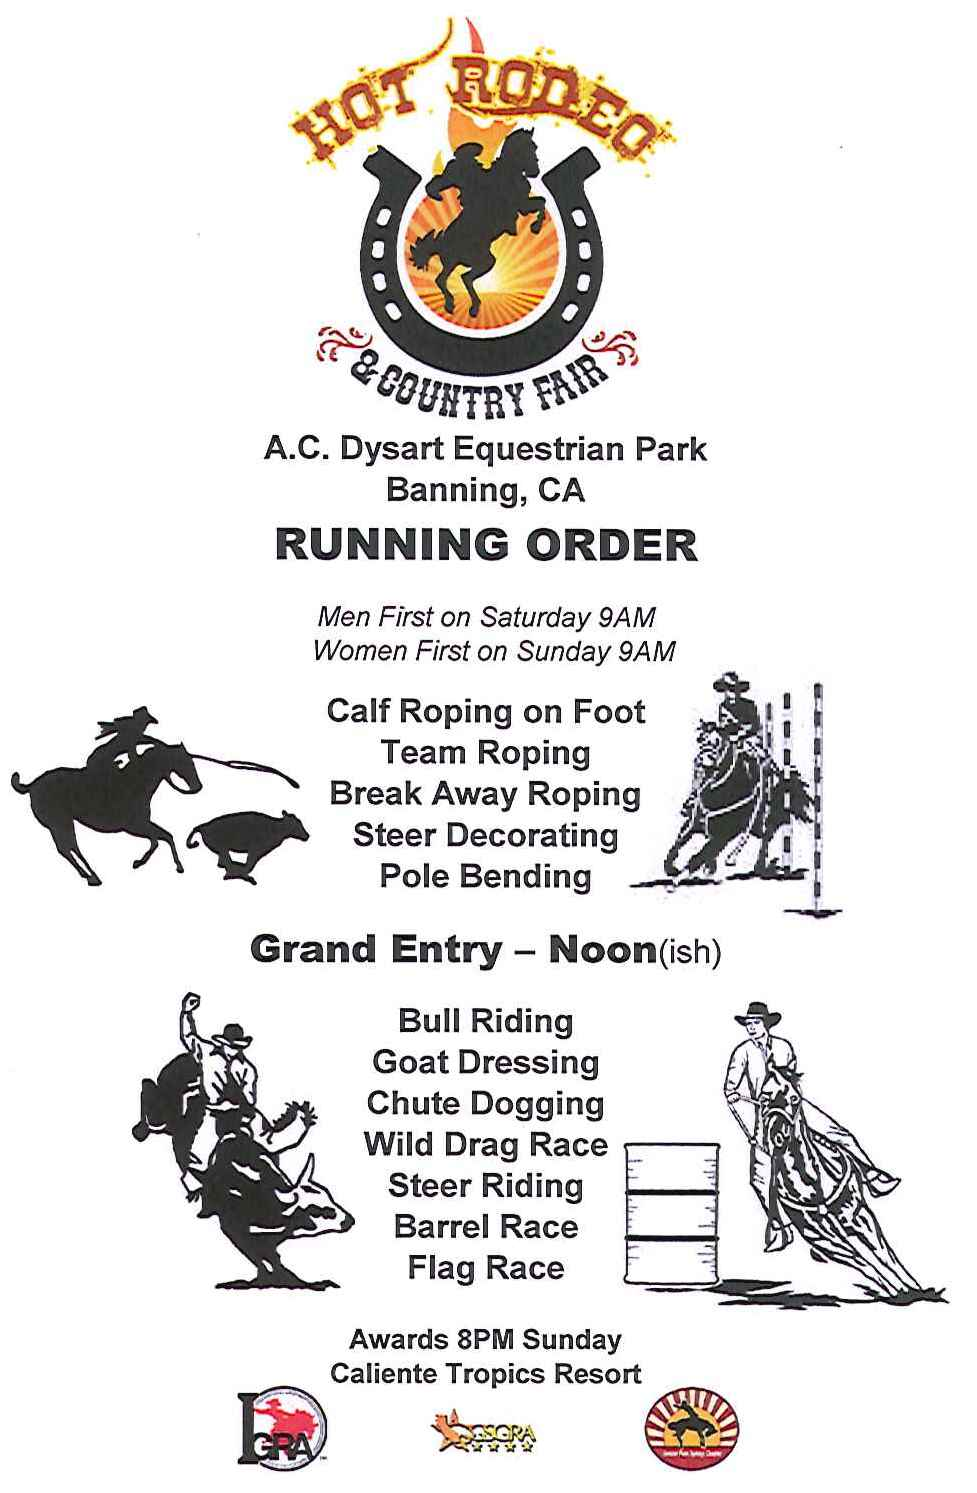 Hot Rodeo & Country Fair Event Running Order